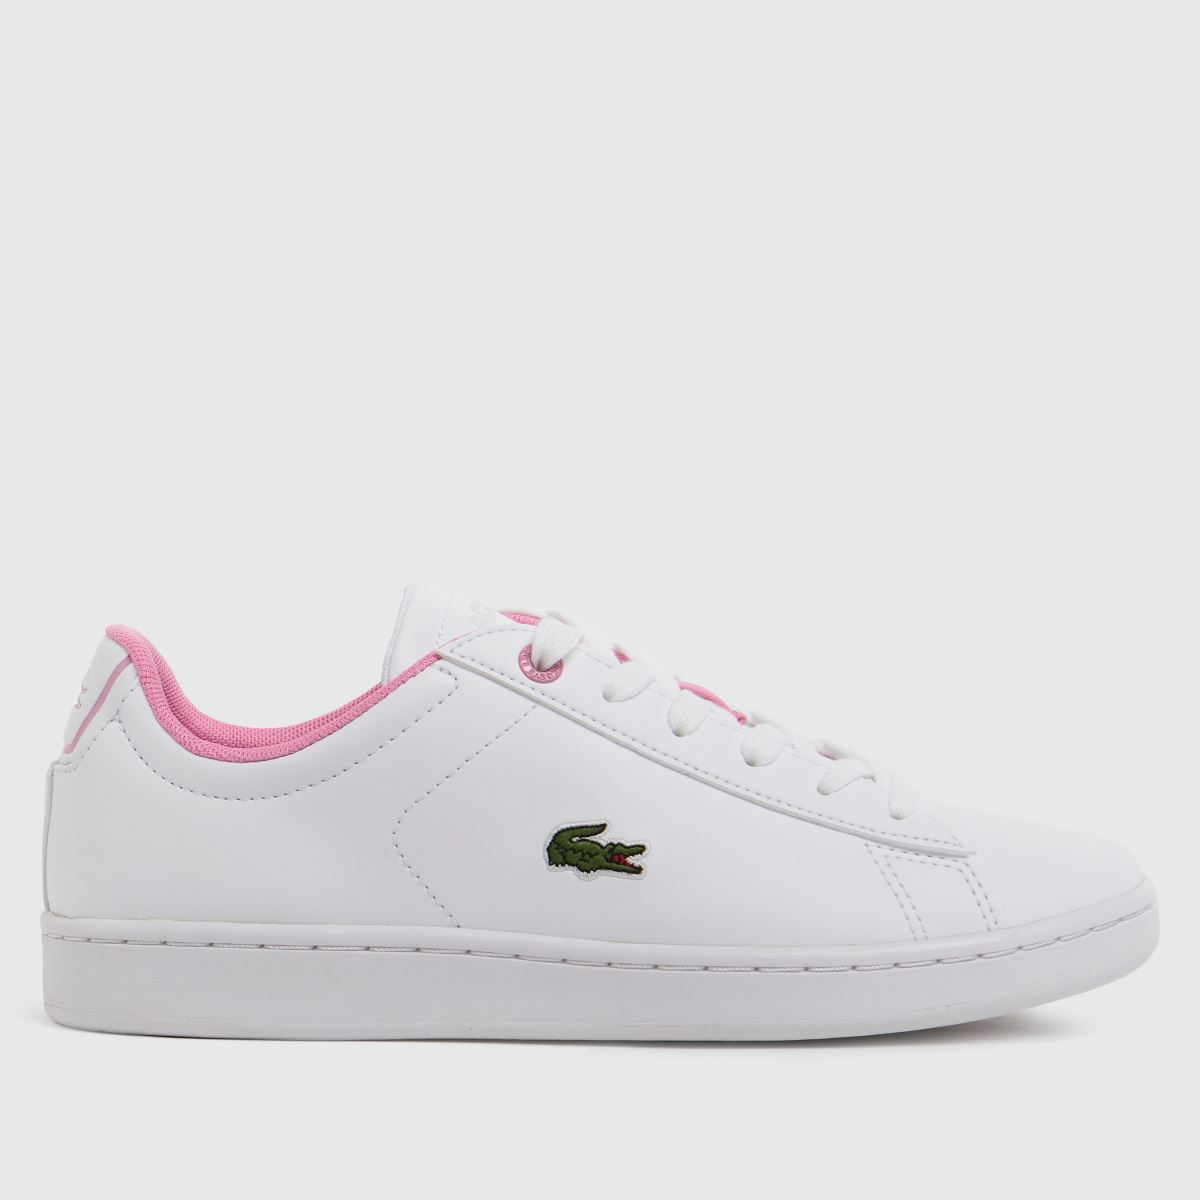 Lacoste White & Pink Carnaby Evo Trainers Youth